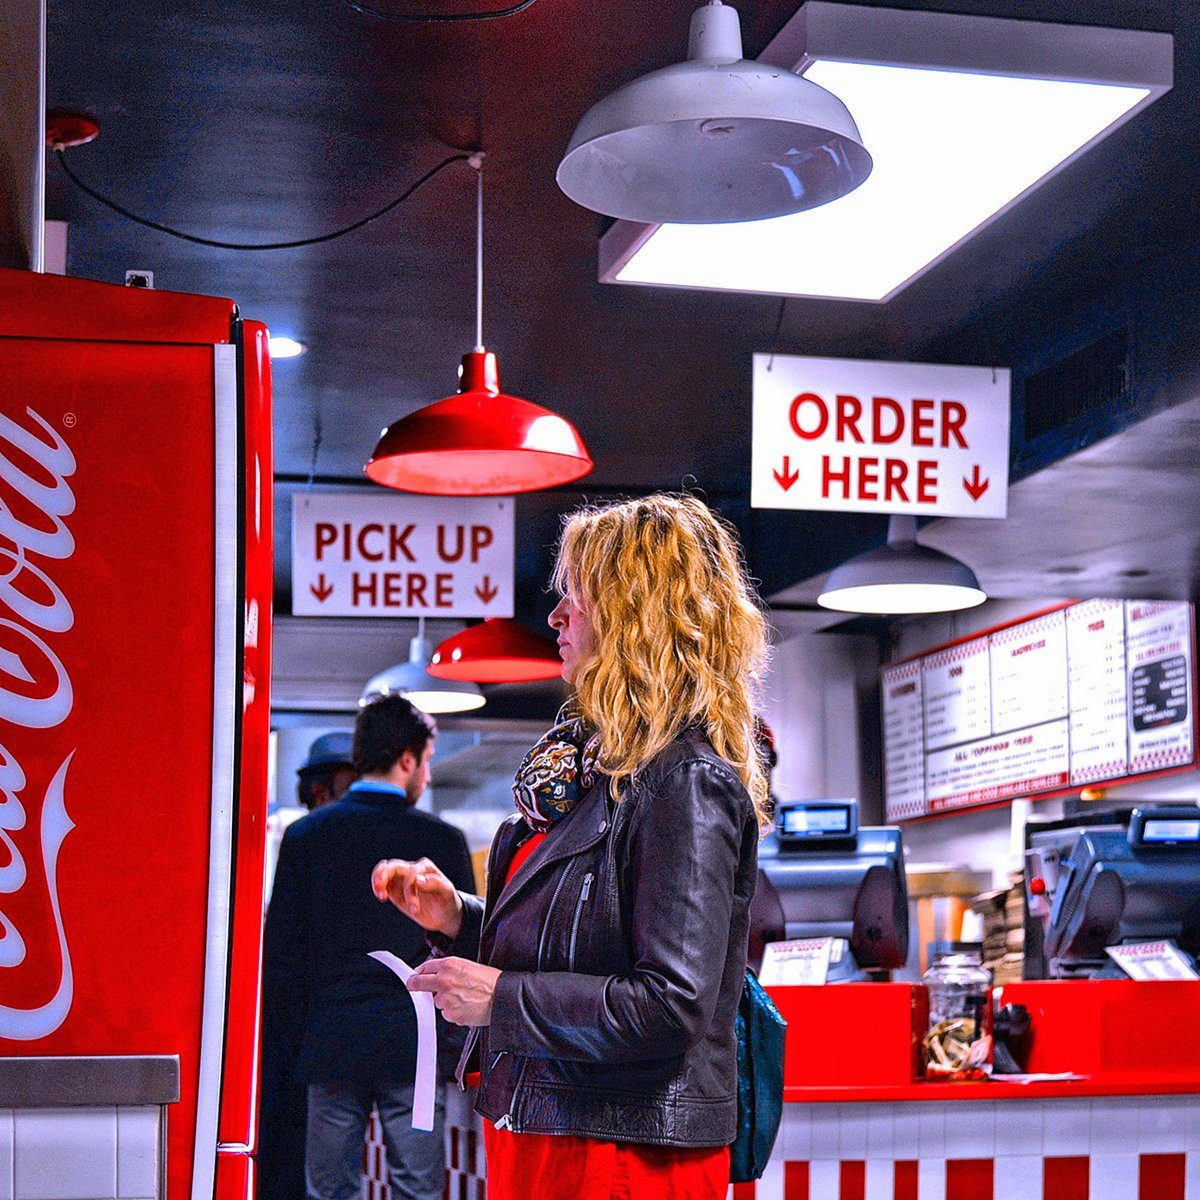 People eating in Five Guys burger fast food restaurant and girl taking a Coca Cola drink